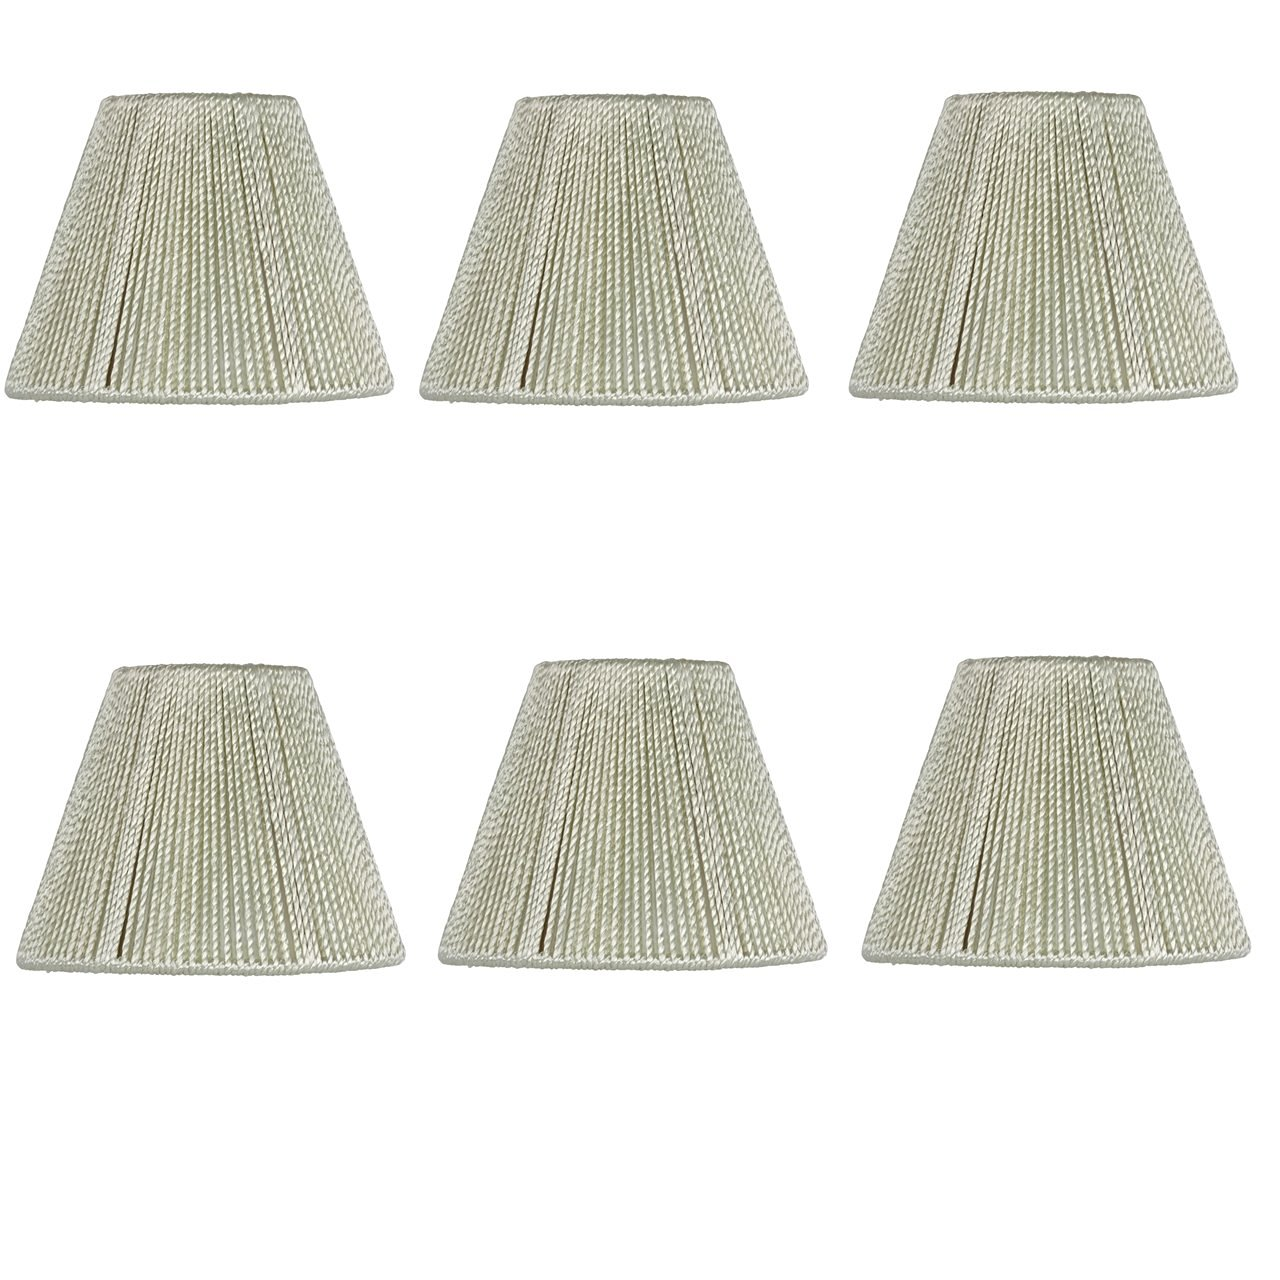 Upgradelights 5 Inch Hand Strung Pleated Empire Chandelier Lamp Shades (Set of six clip on shades) 3x5x4